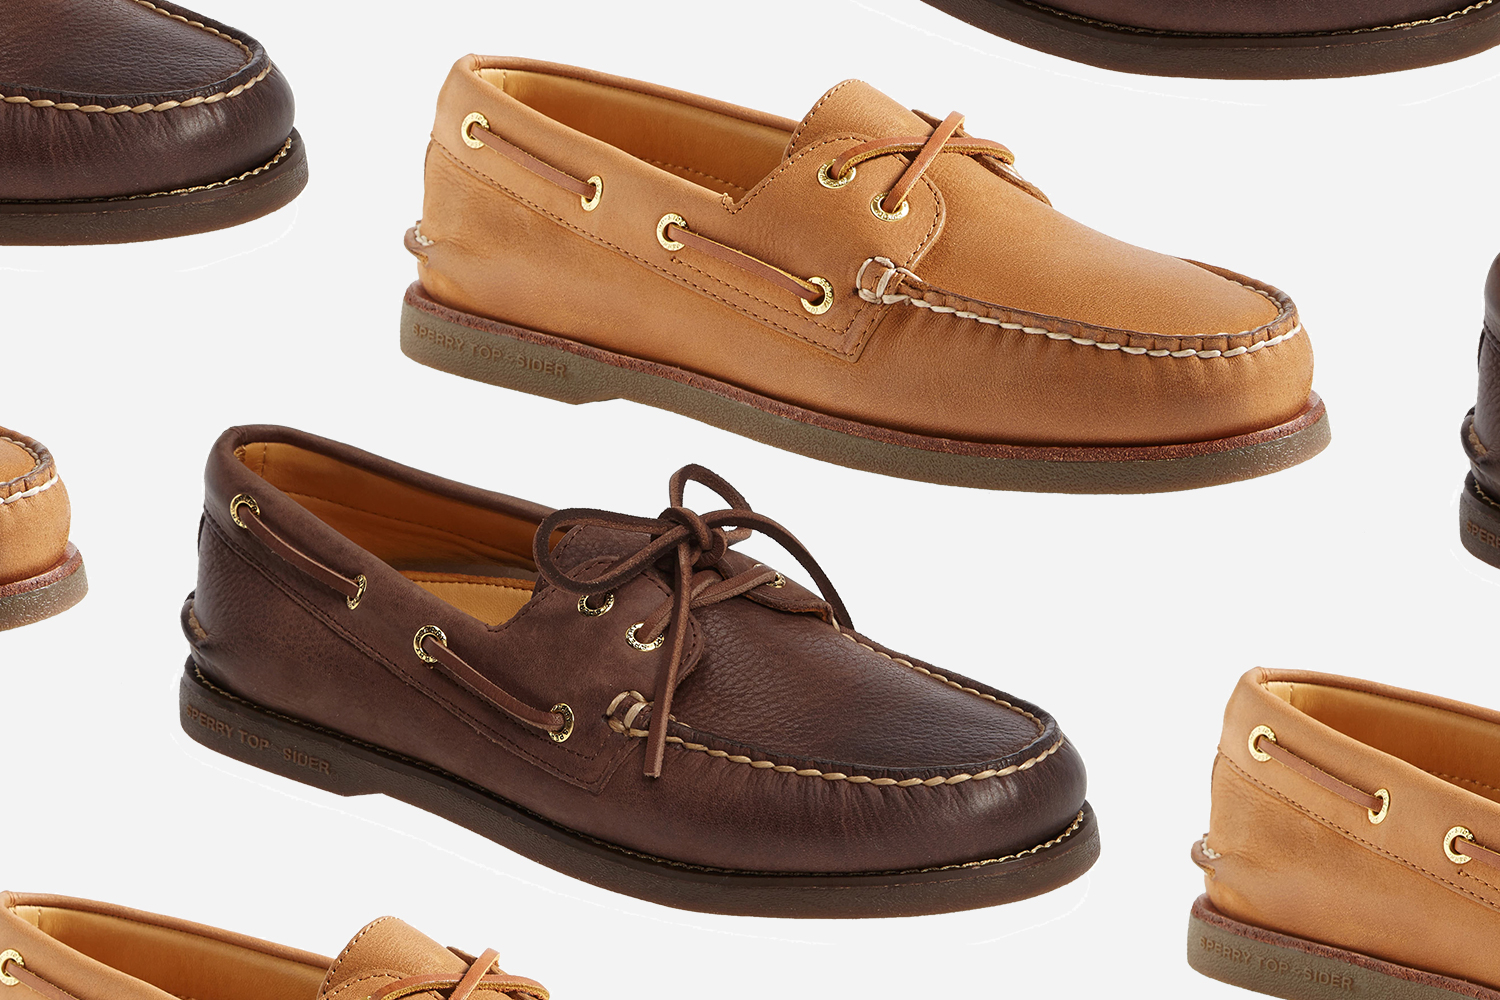 sperry gold cup authentic original boat shoes